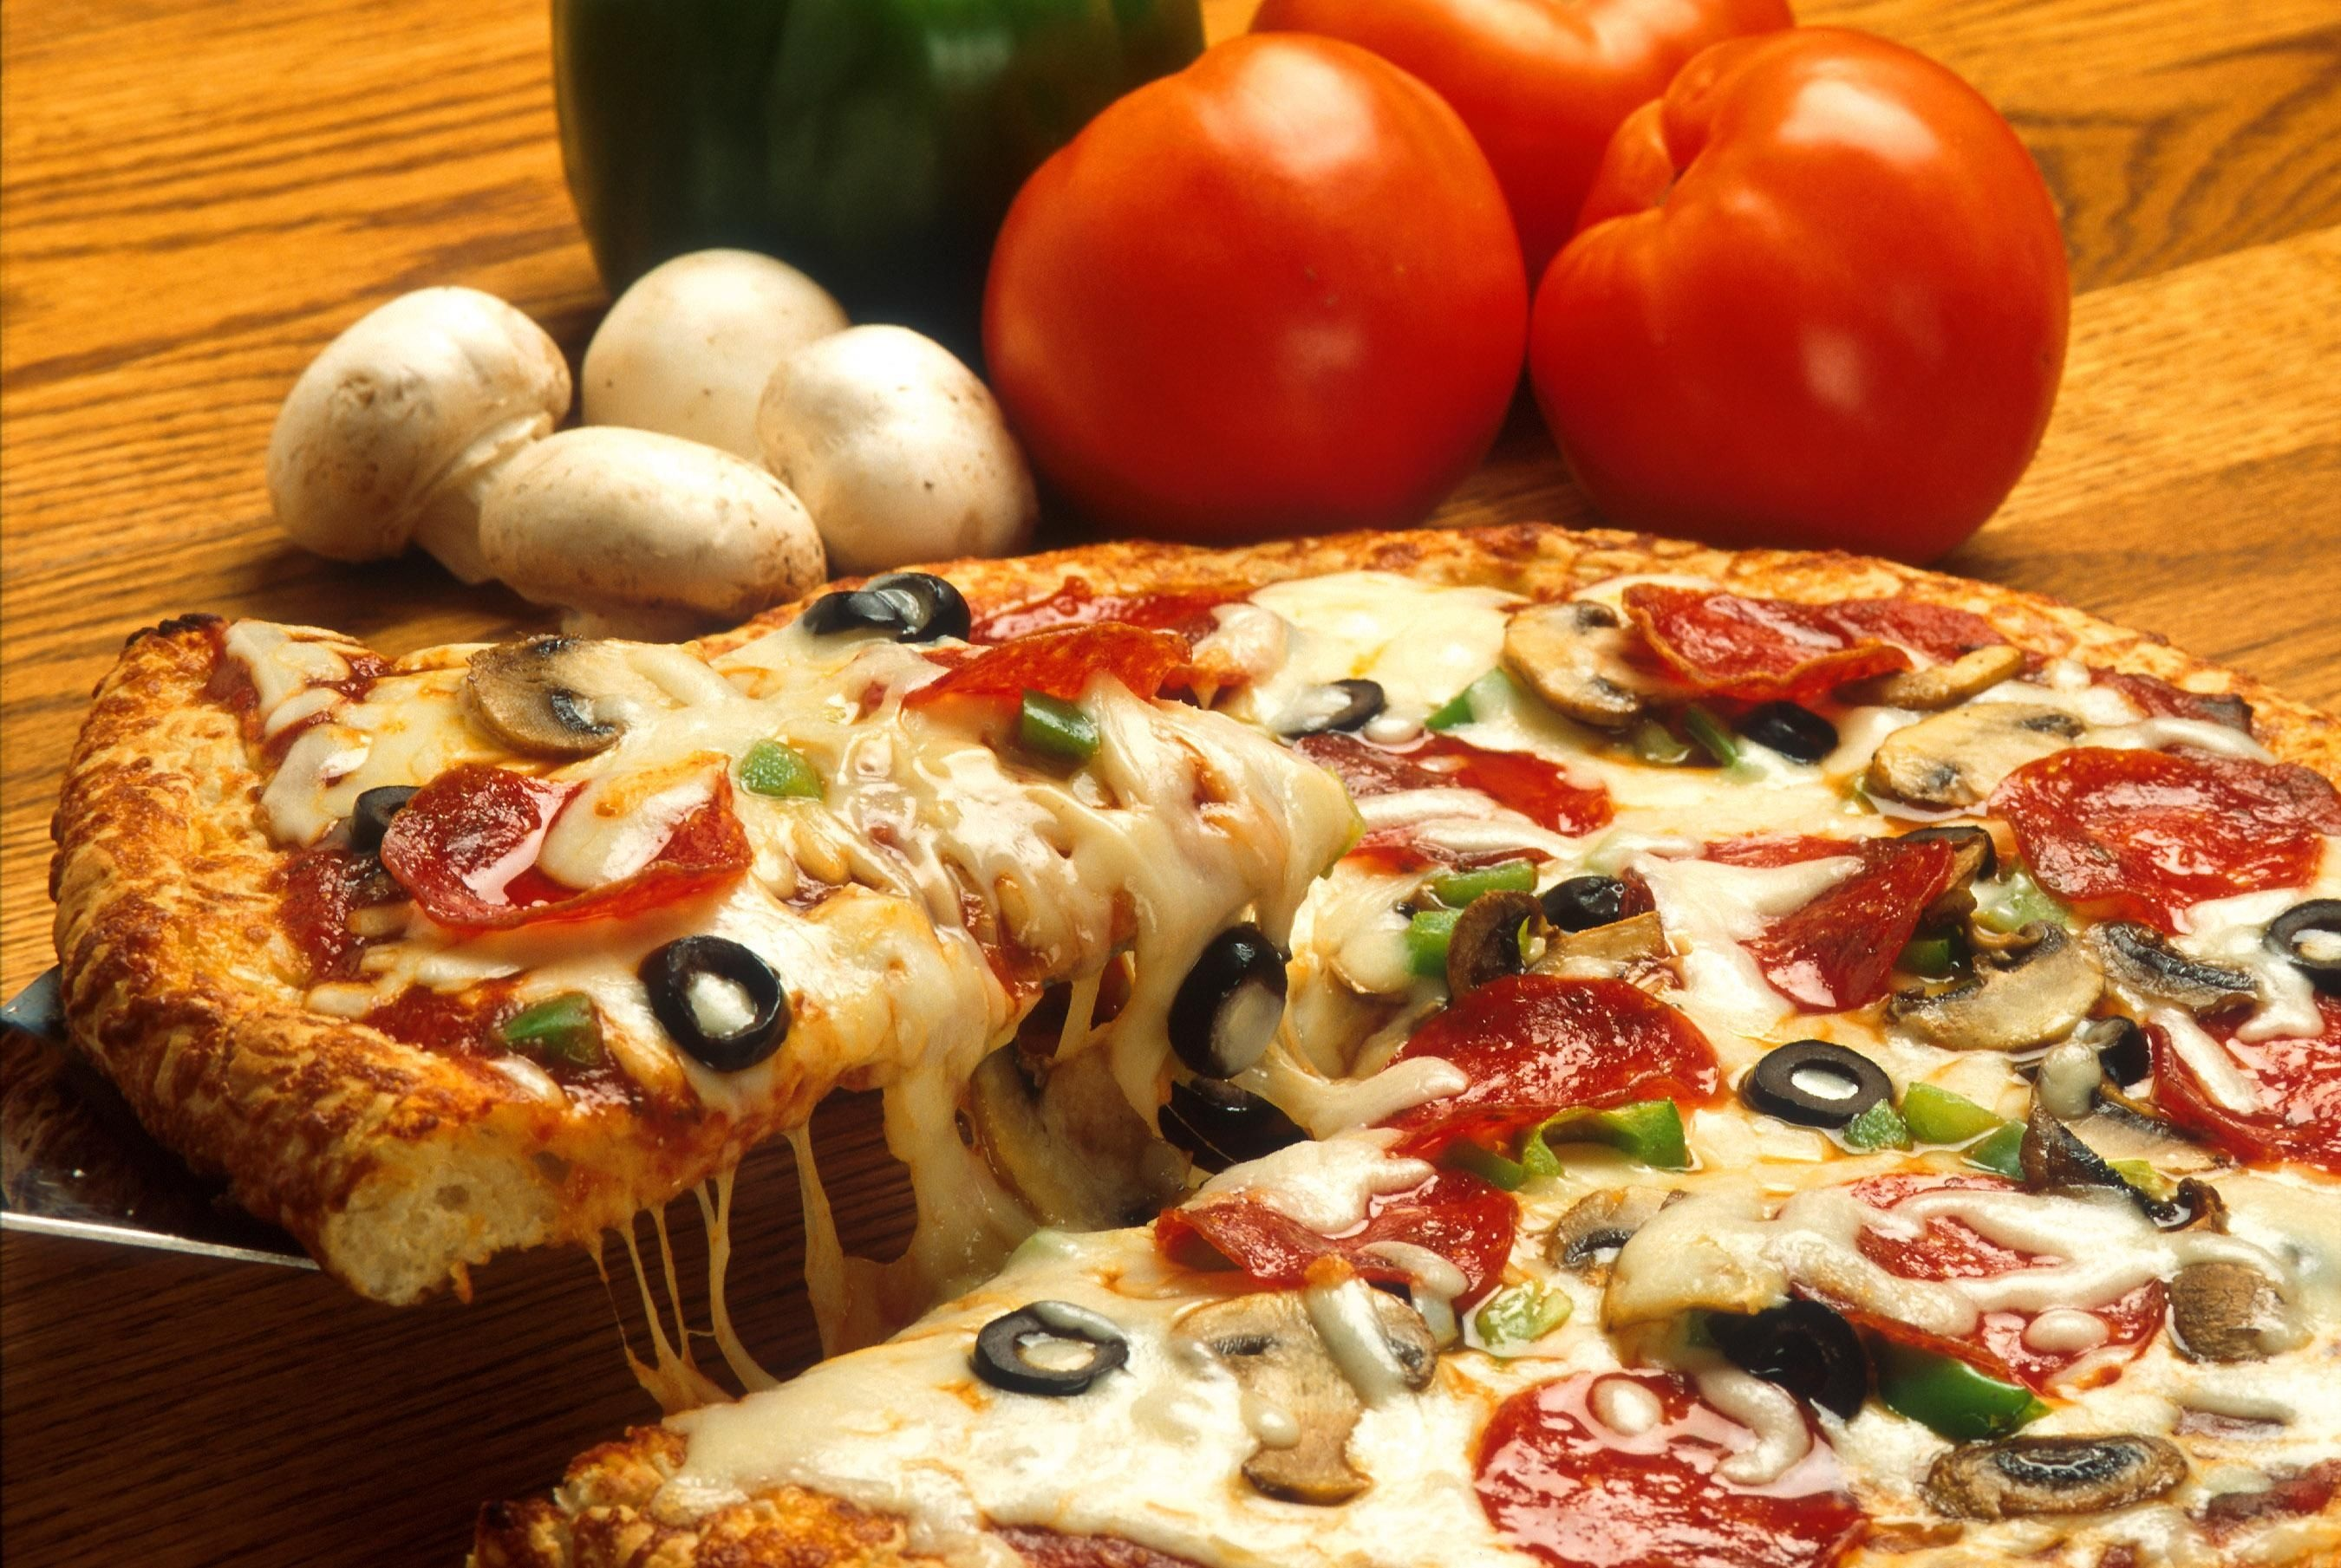 Pizza Might Be A Superfood In The Future, Nutritionist Says vegetables italian pizza restaurant